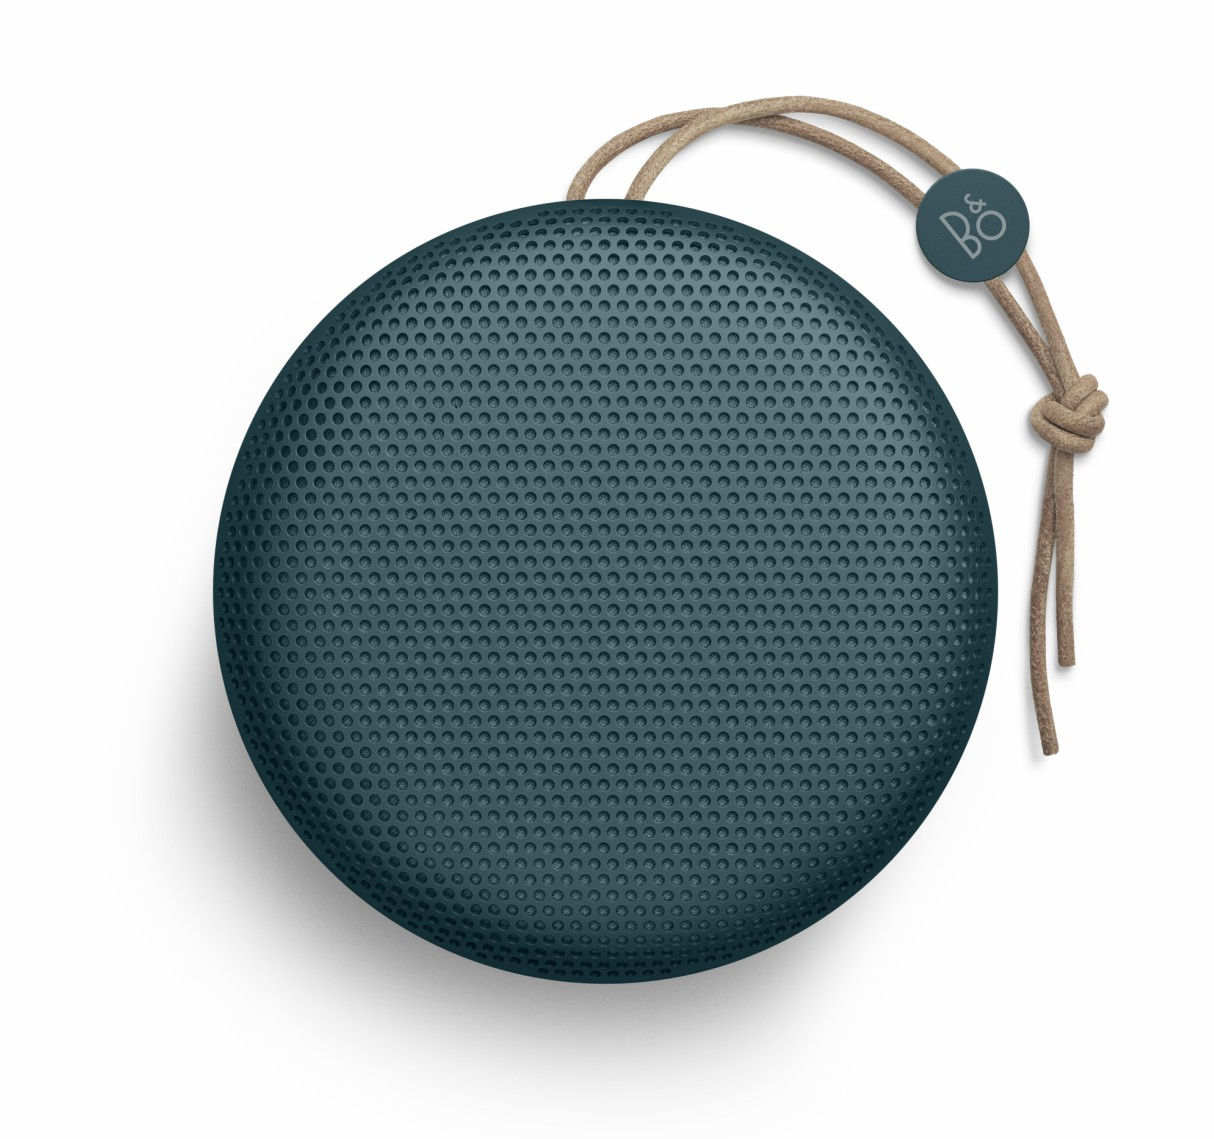 bang-olufsen-bo-ss18-collection-a1-blue